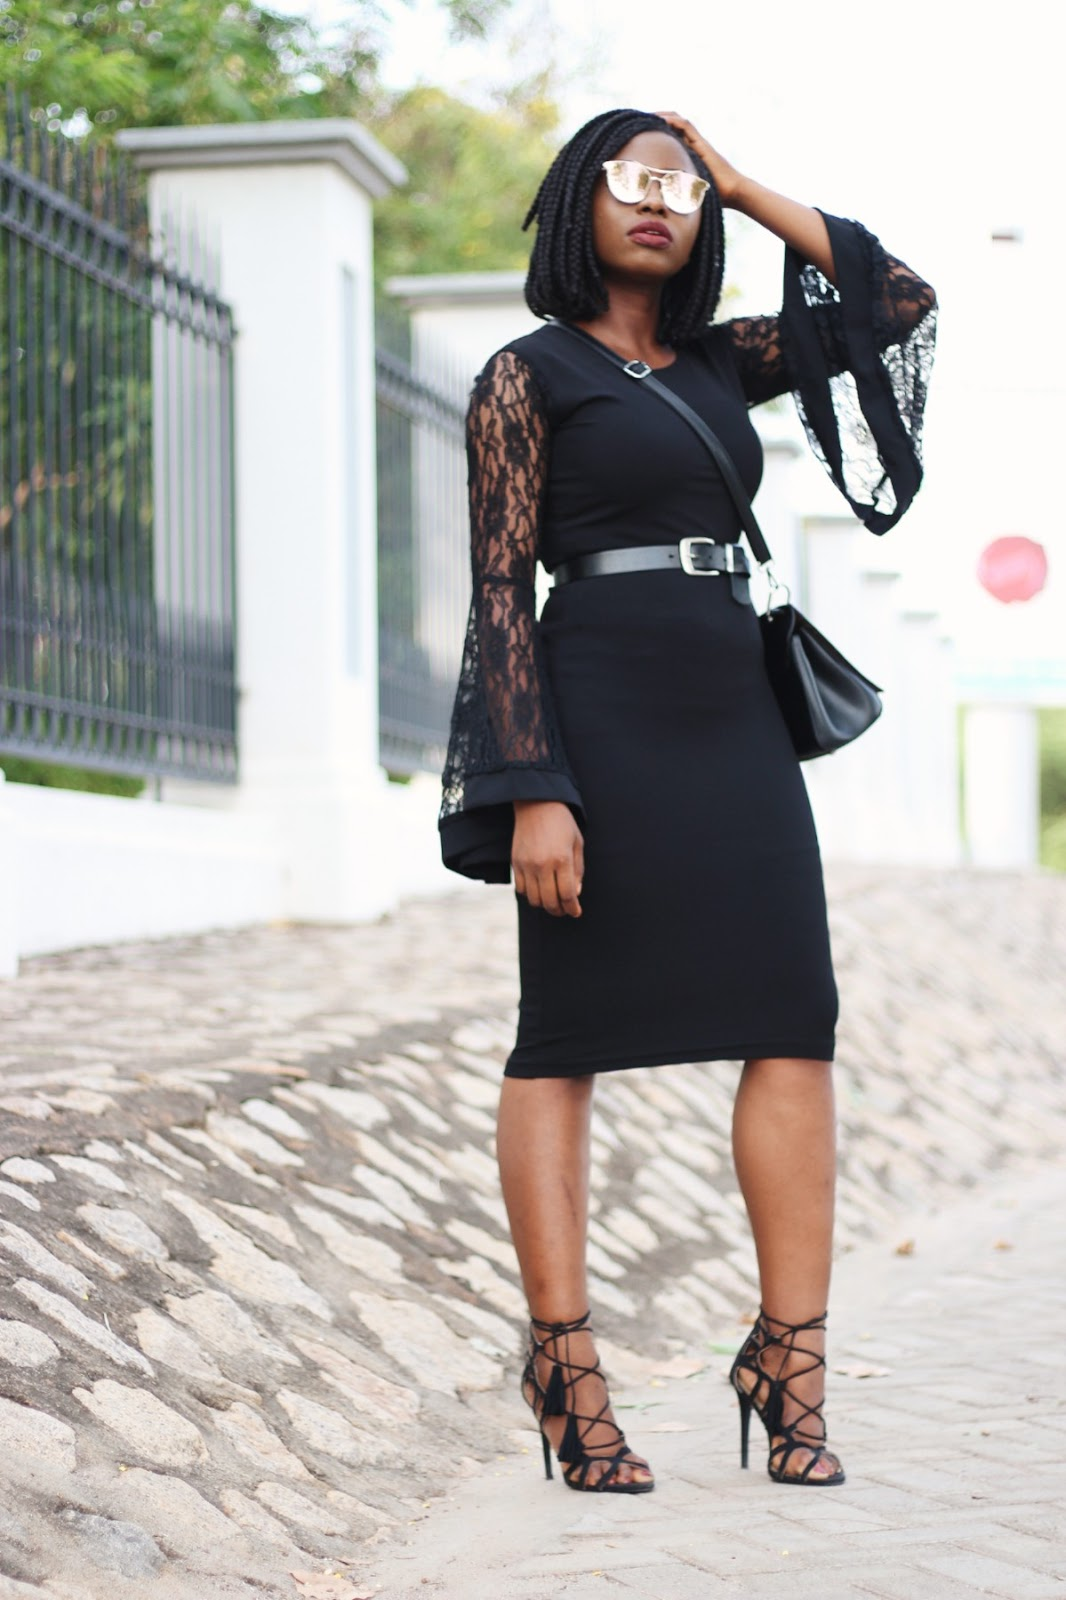 little black dress, lace, lbd, black, lace up heels, made in nigeria, flared sleeves